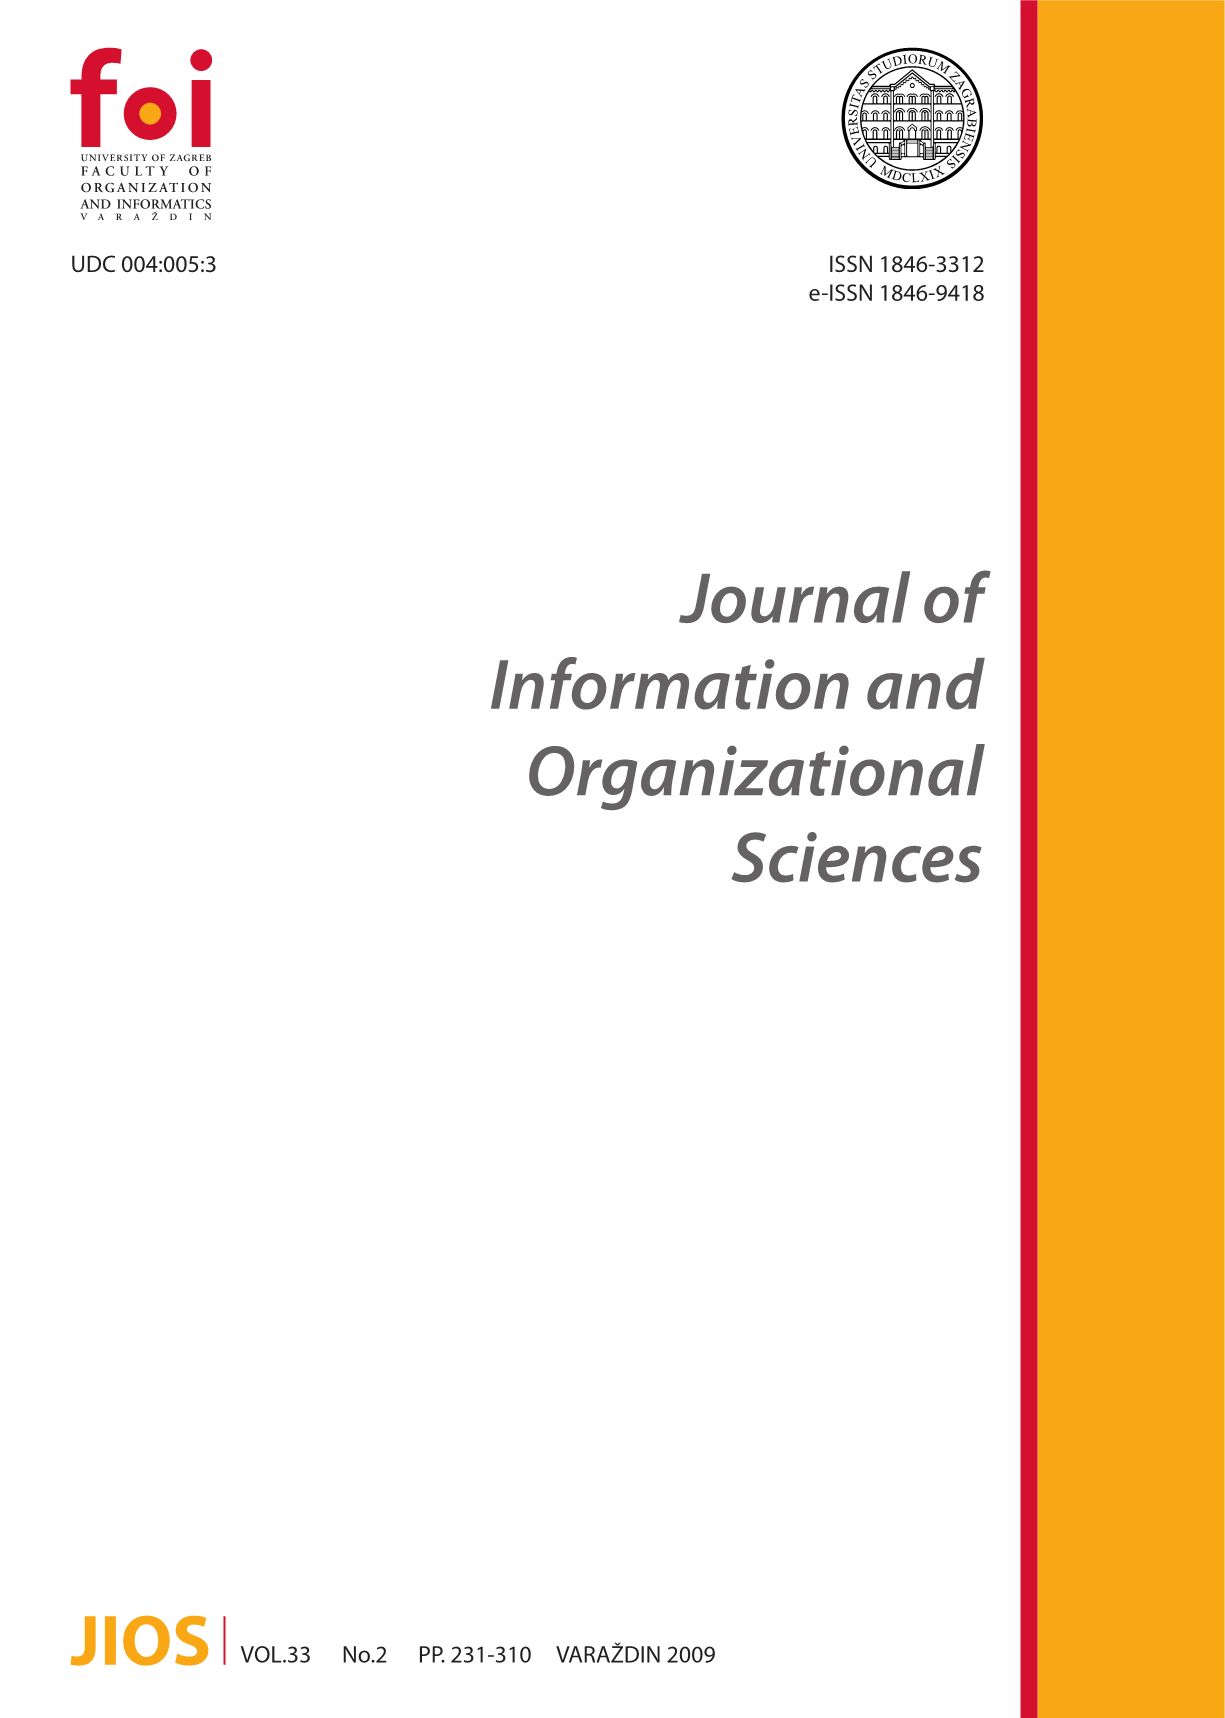 Impact Of Ict On The Structural And Contextual Organizational Elements Case Of The Varazdin County